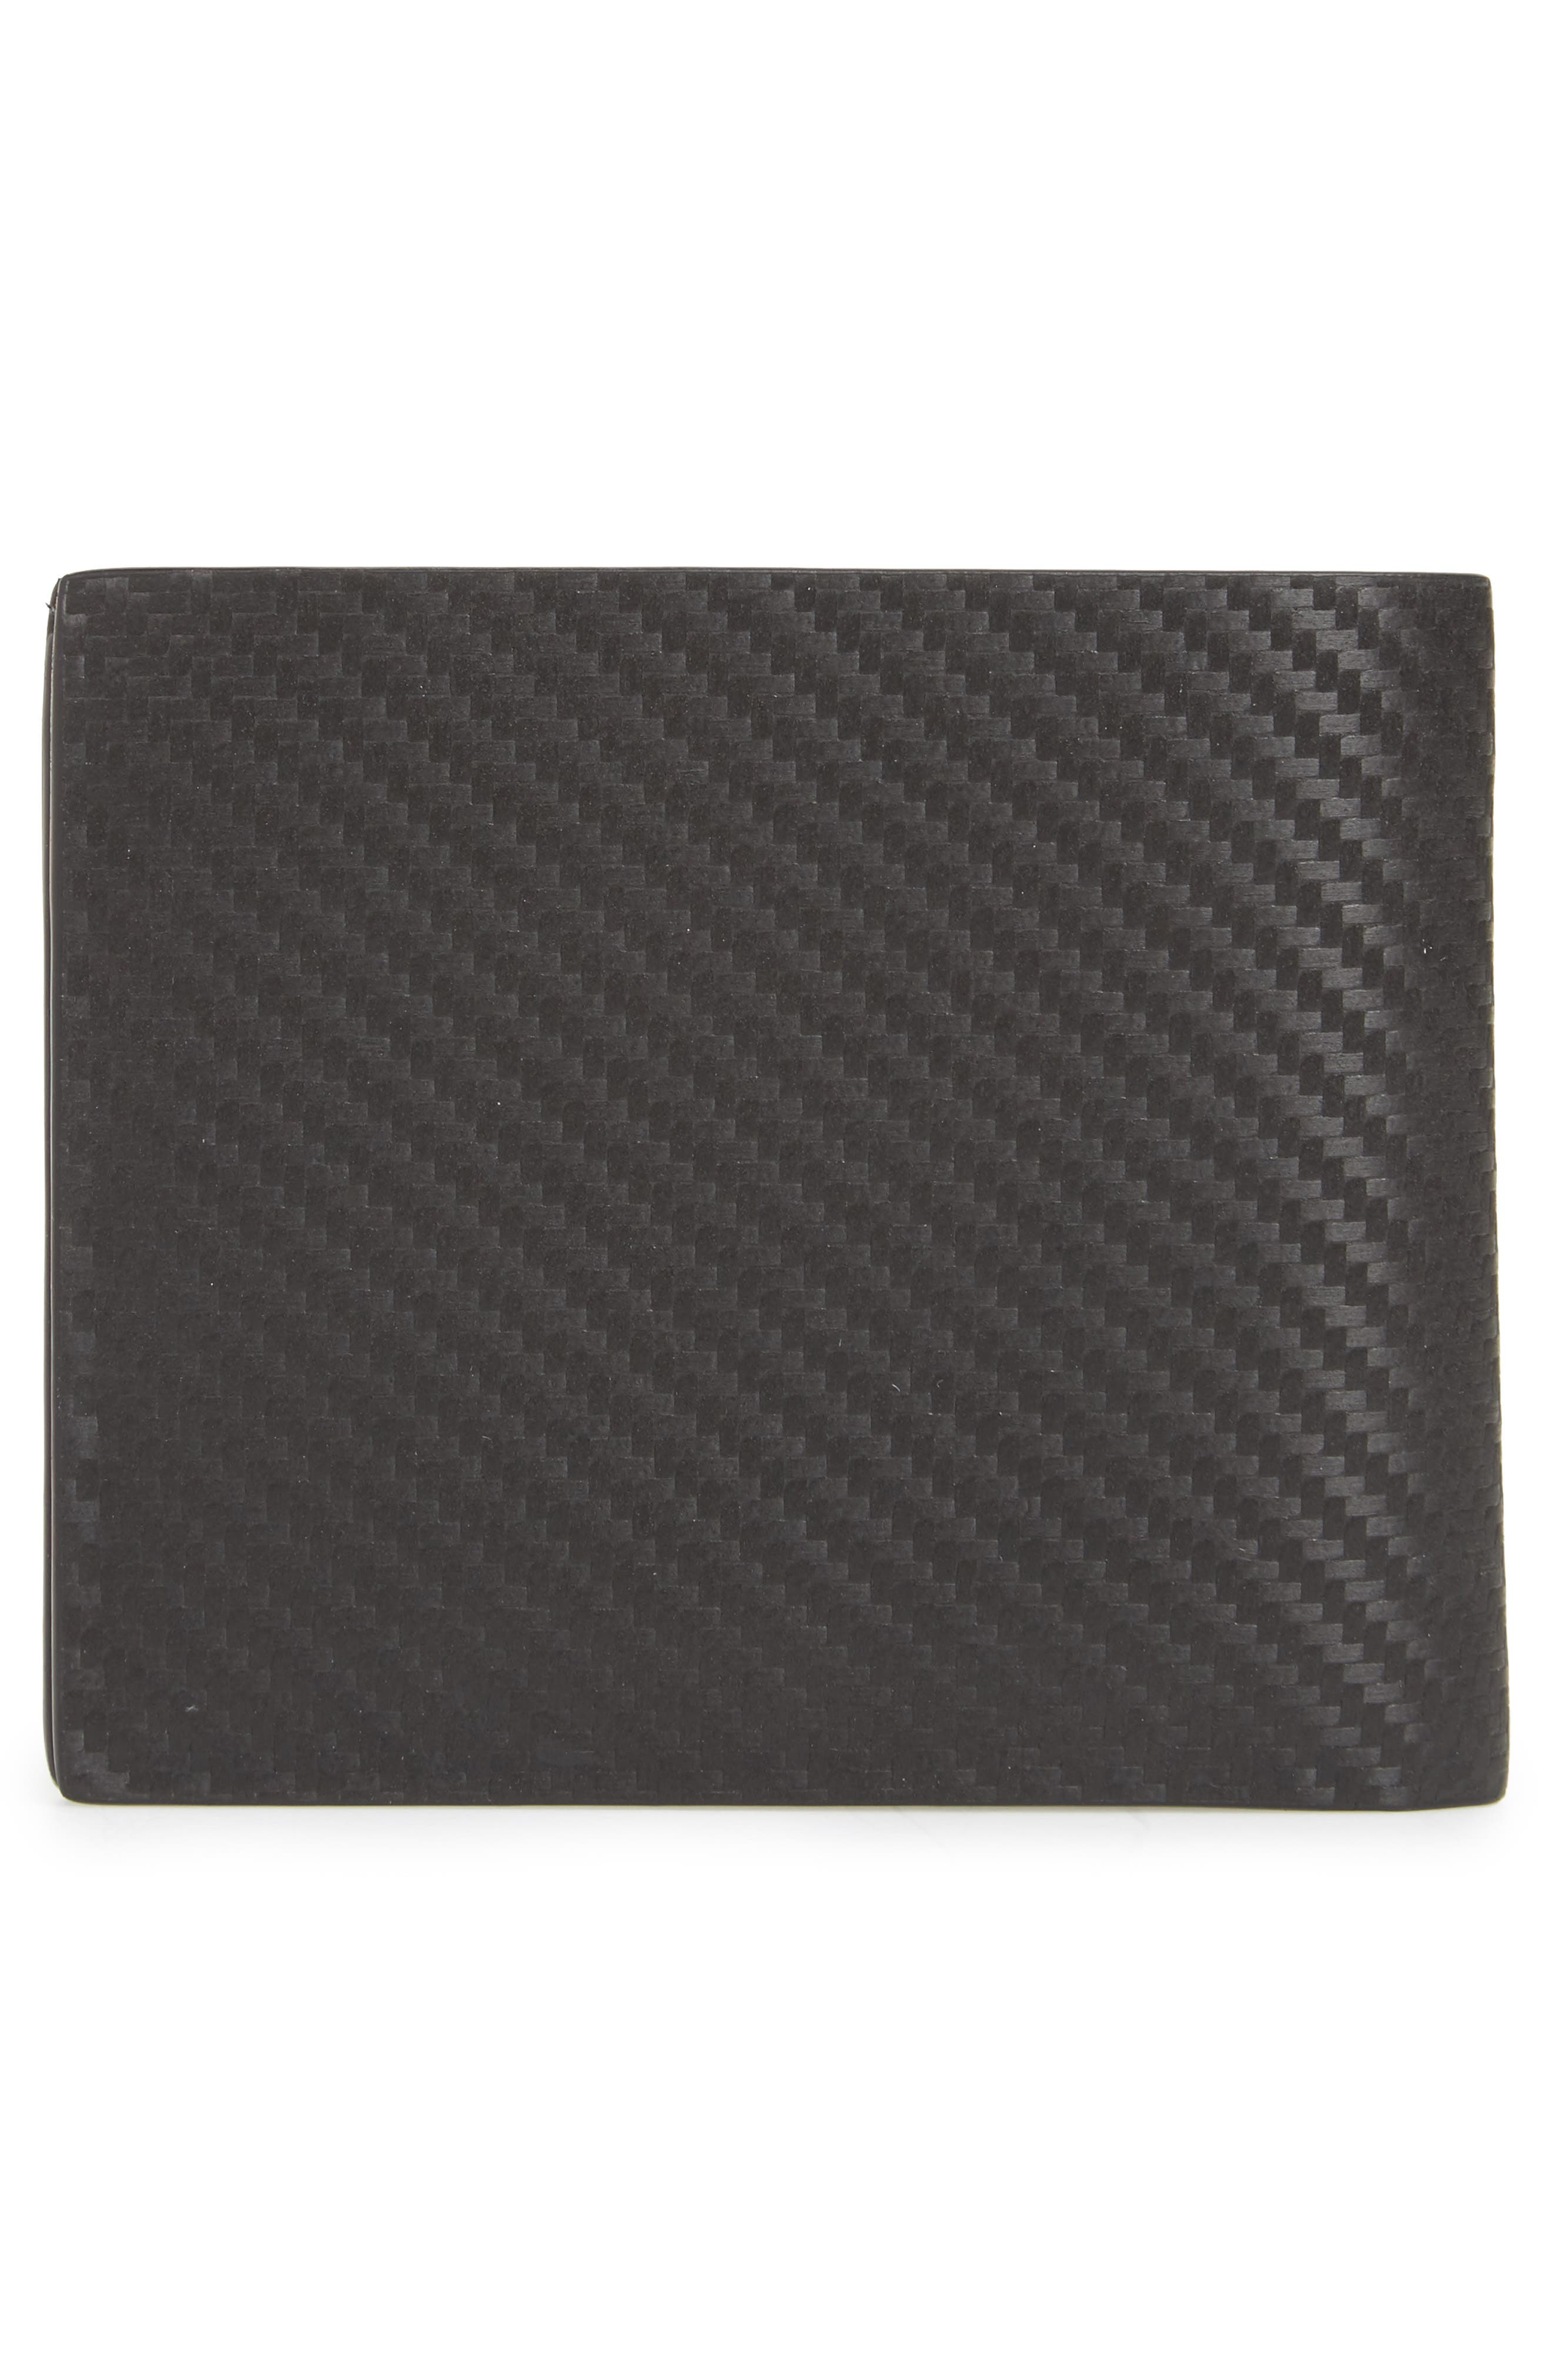 Chassis Leather Wallet,                             Alternate thumbnail 3, color,                             Black